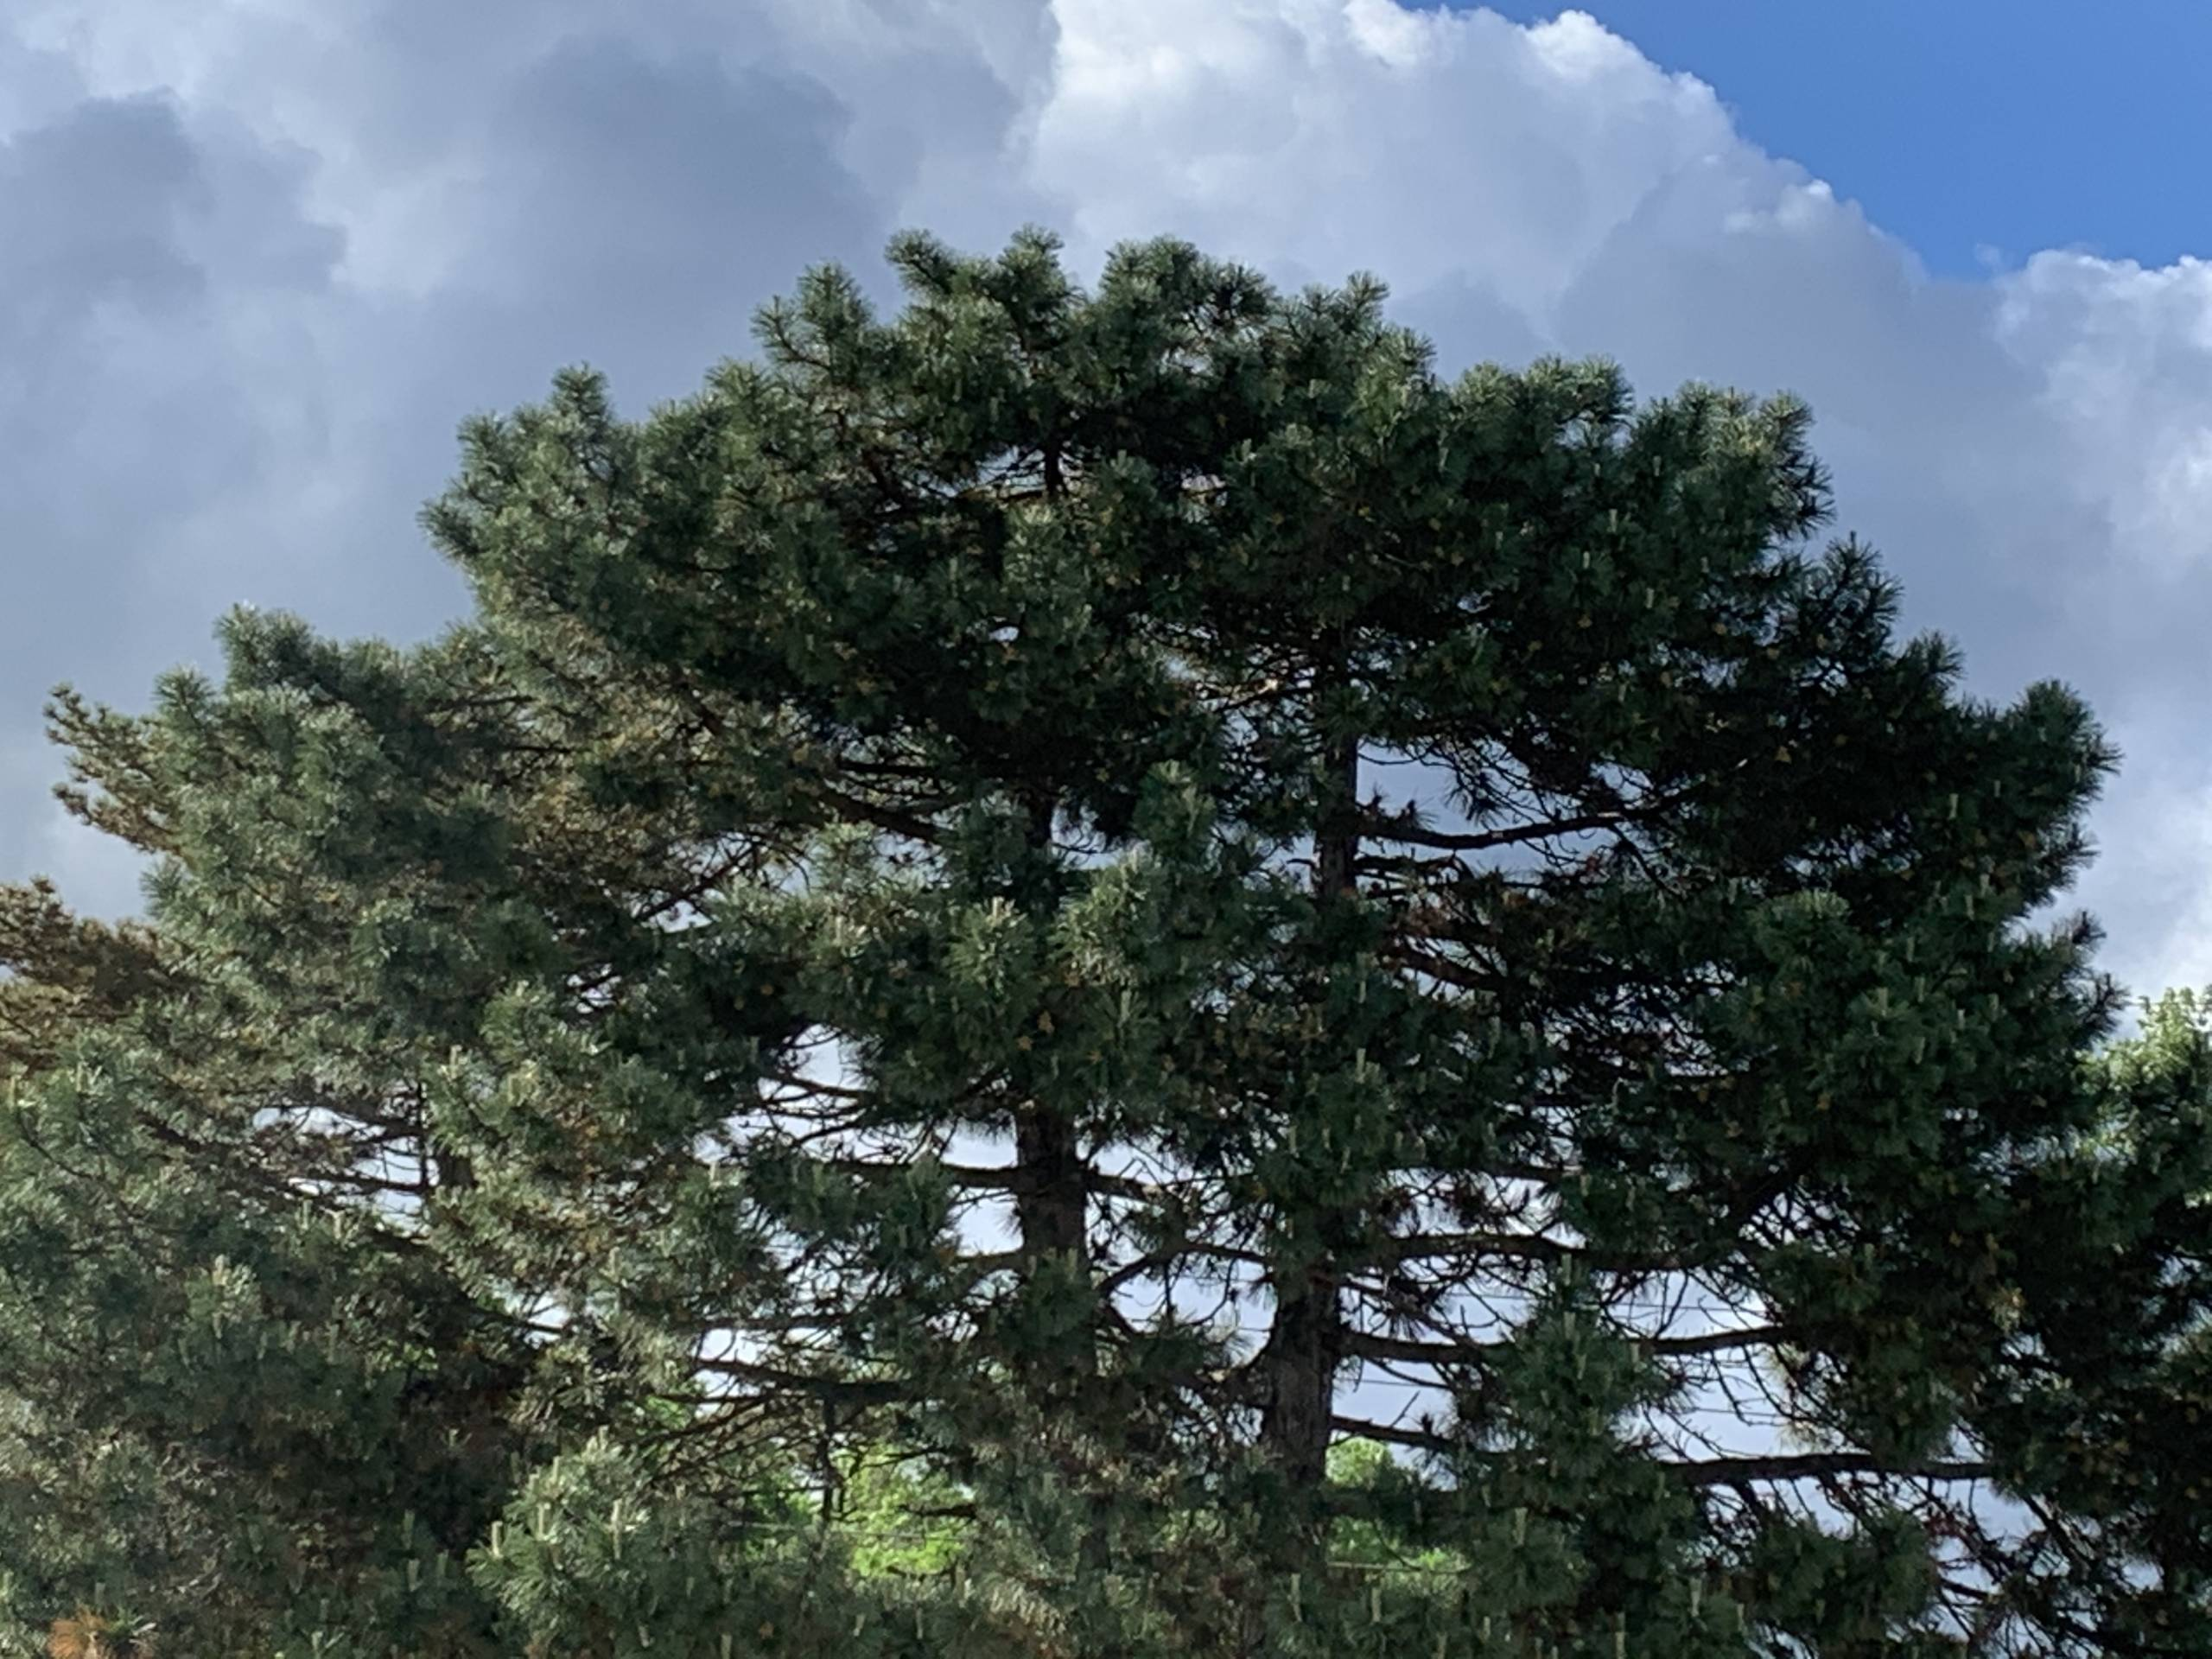 Scotch pine set off against partly cloudy sky